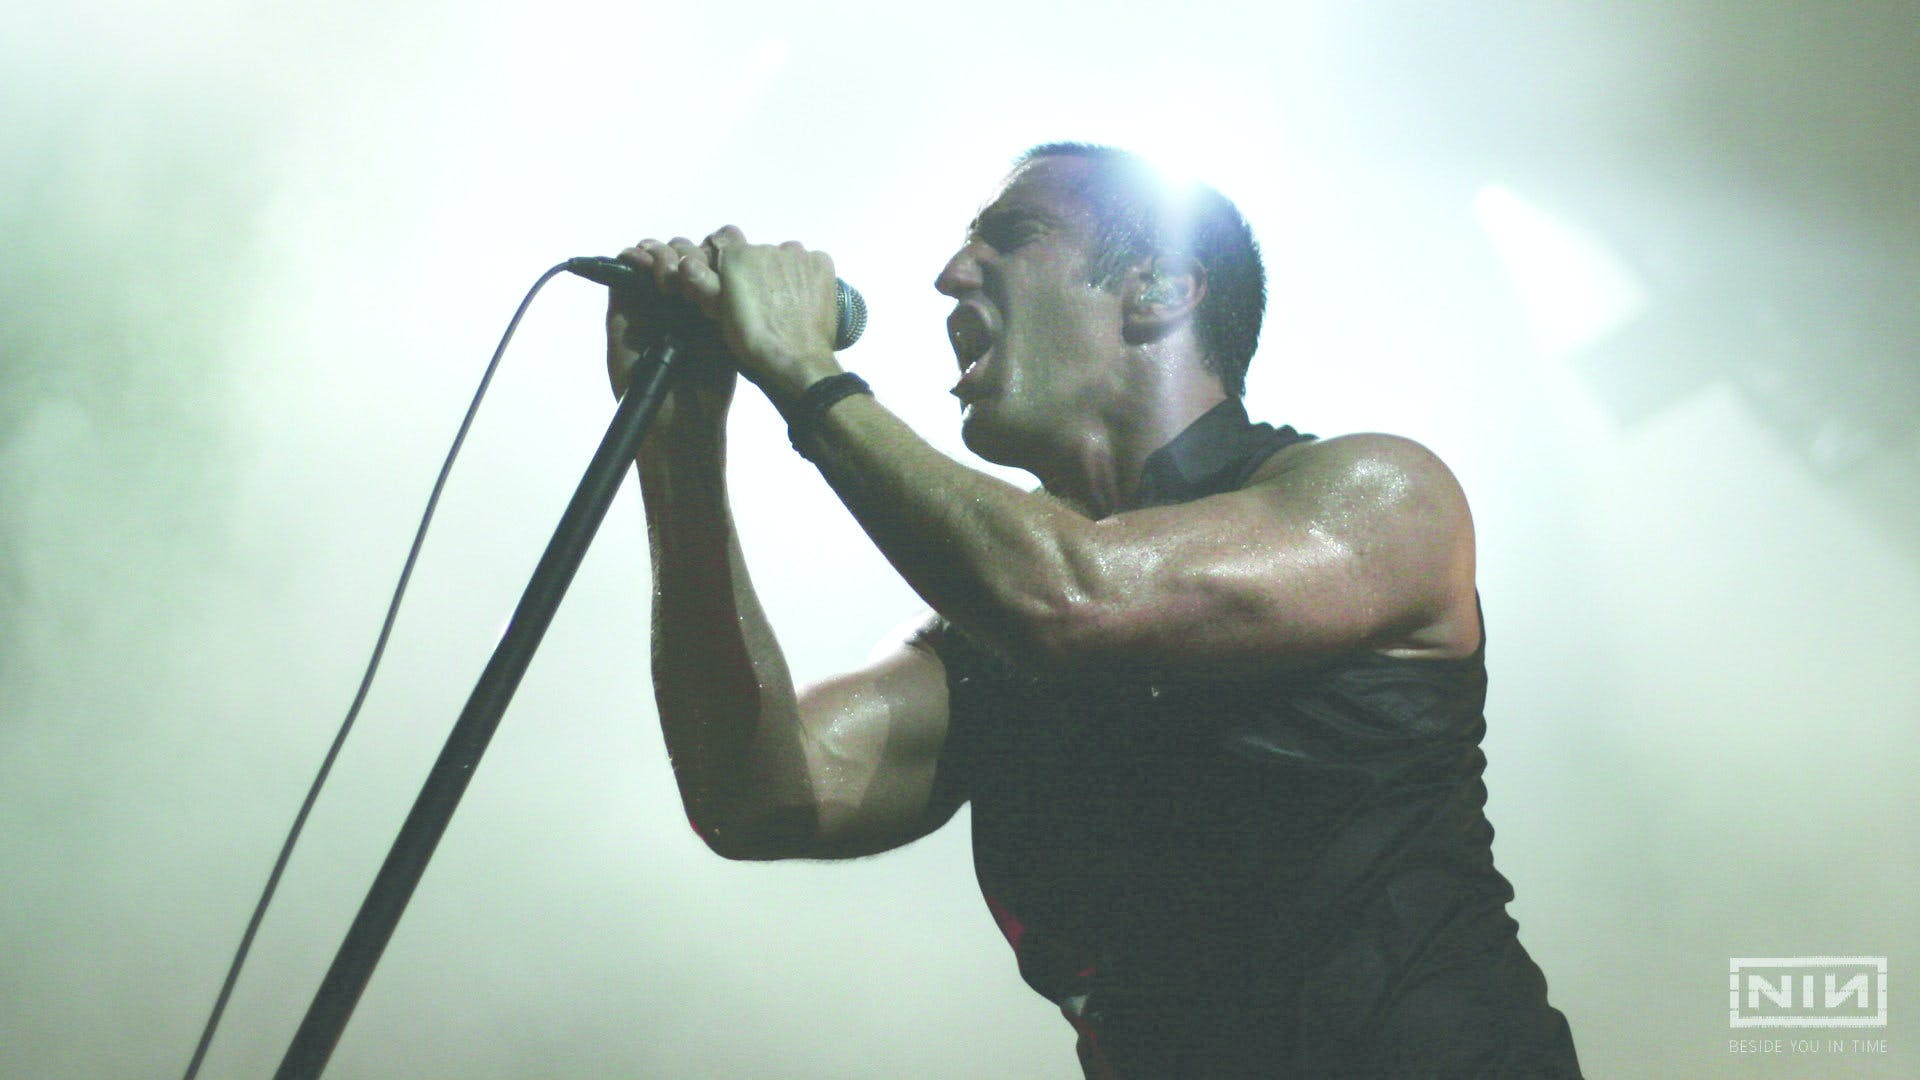 Nine Inch Nails' Trent Reznor Has Filed A Restraining Order Against His Neighbour